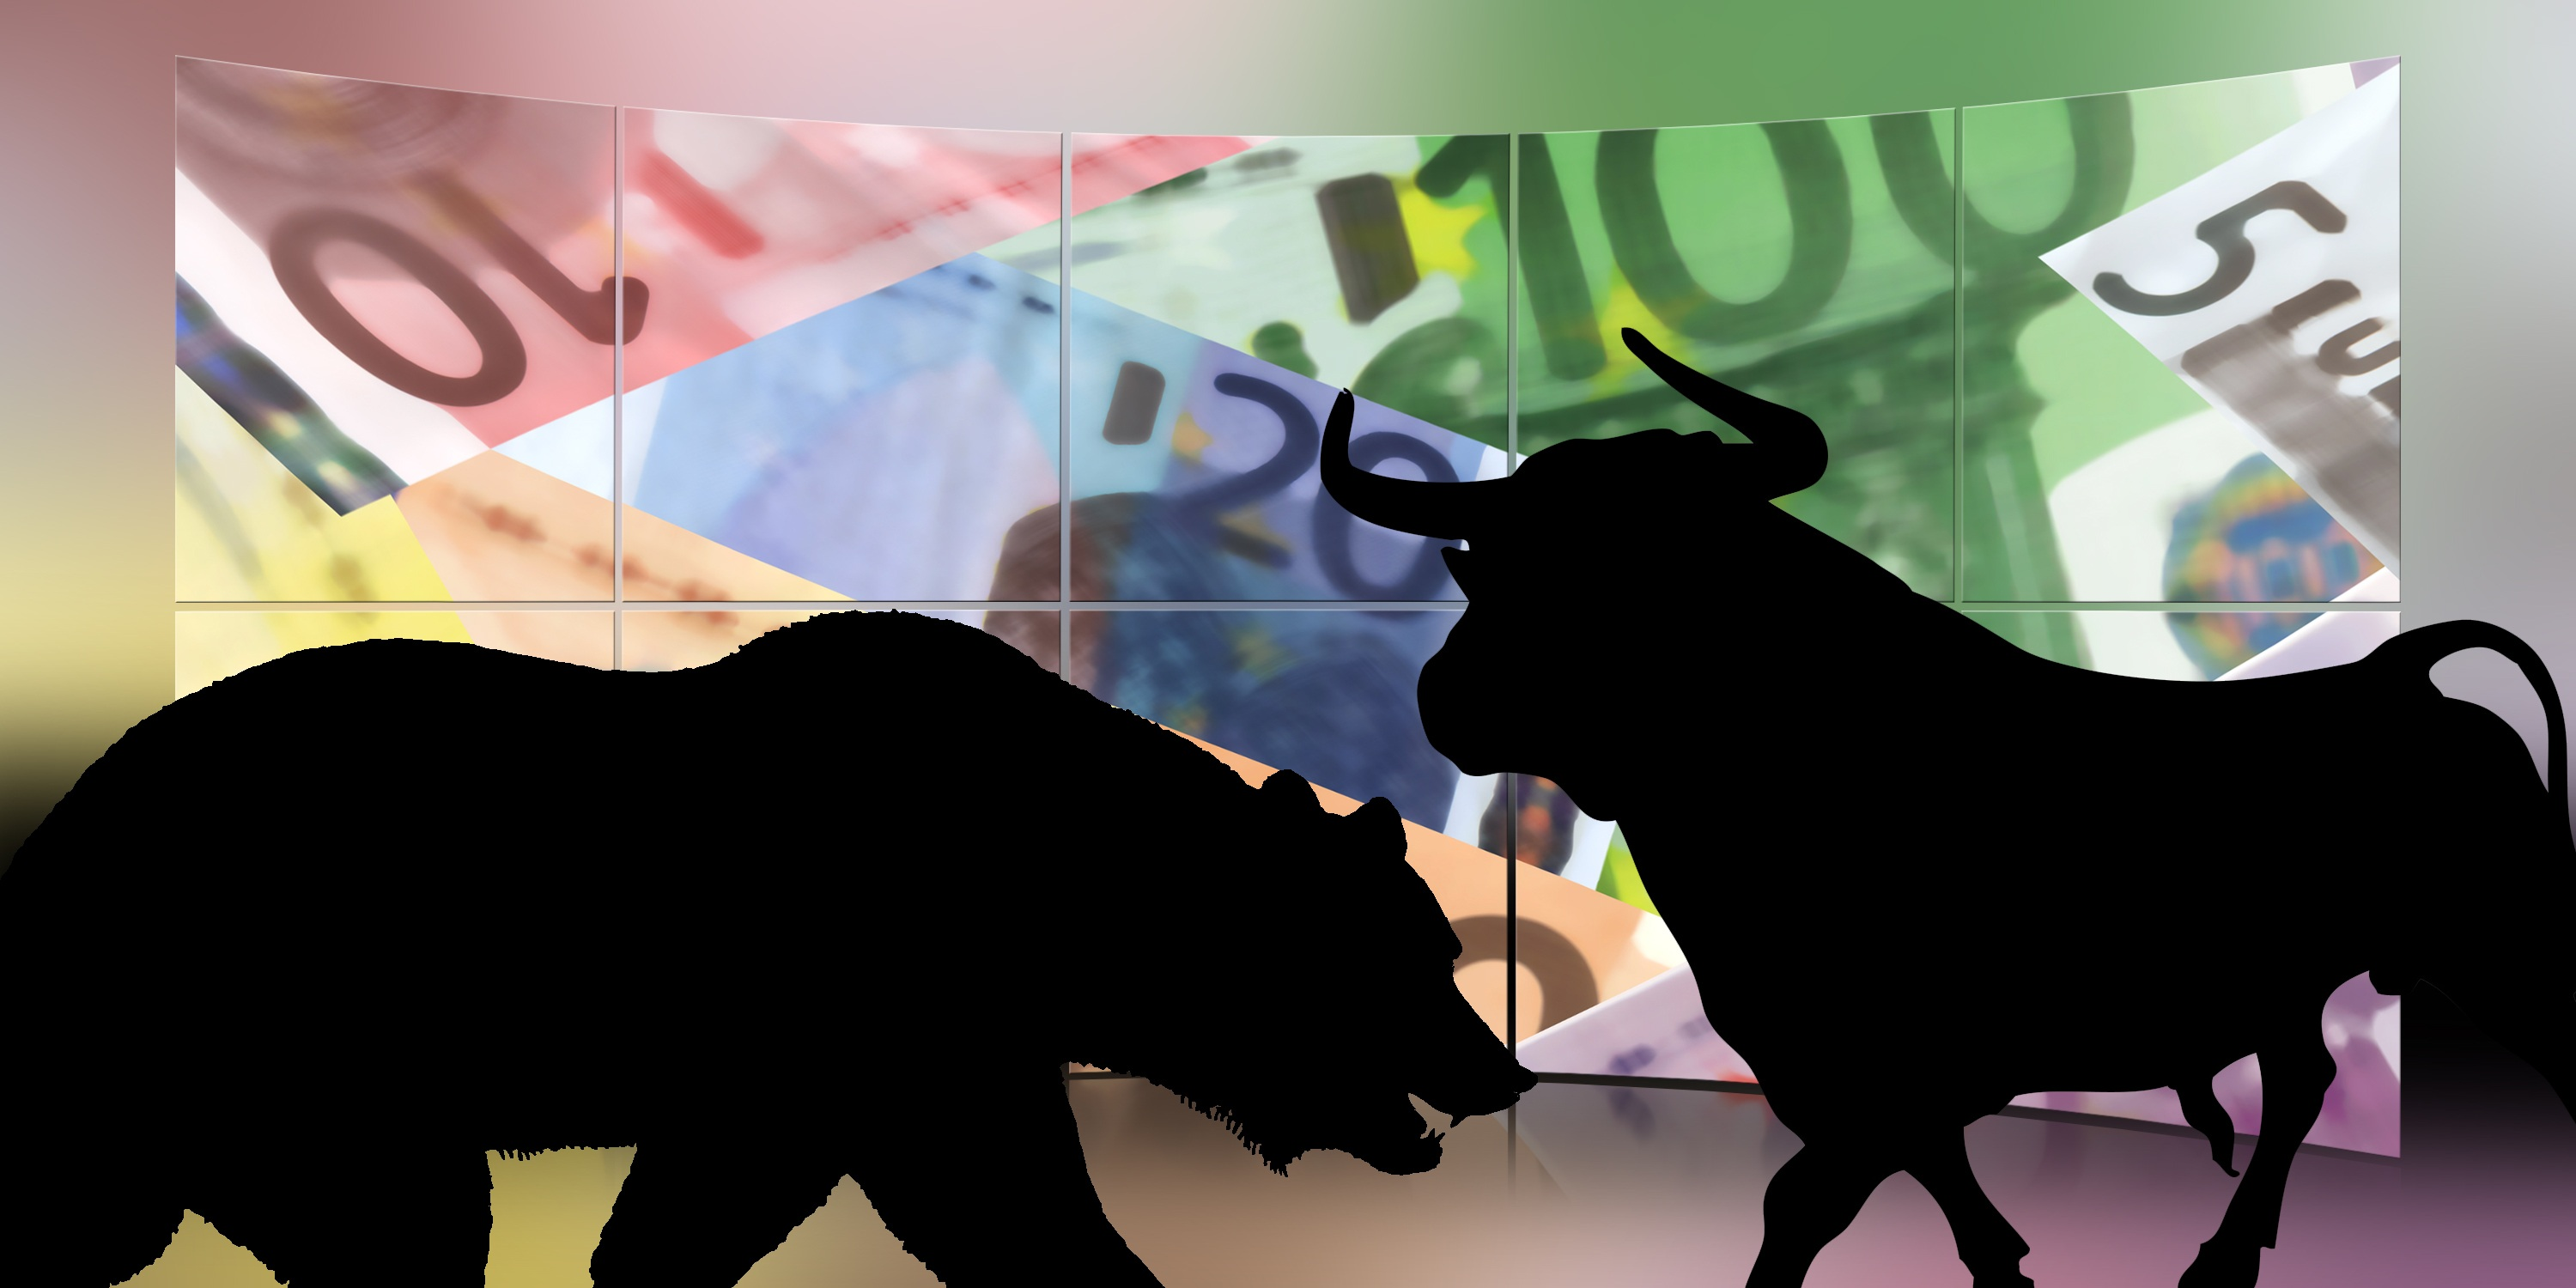 Bull and bear silhouette over forgien currency.